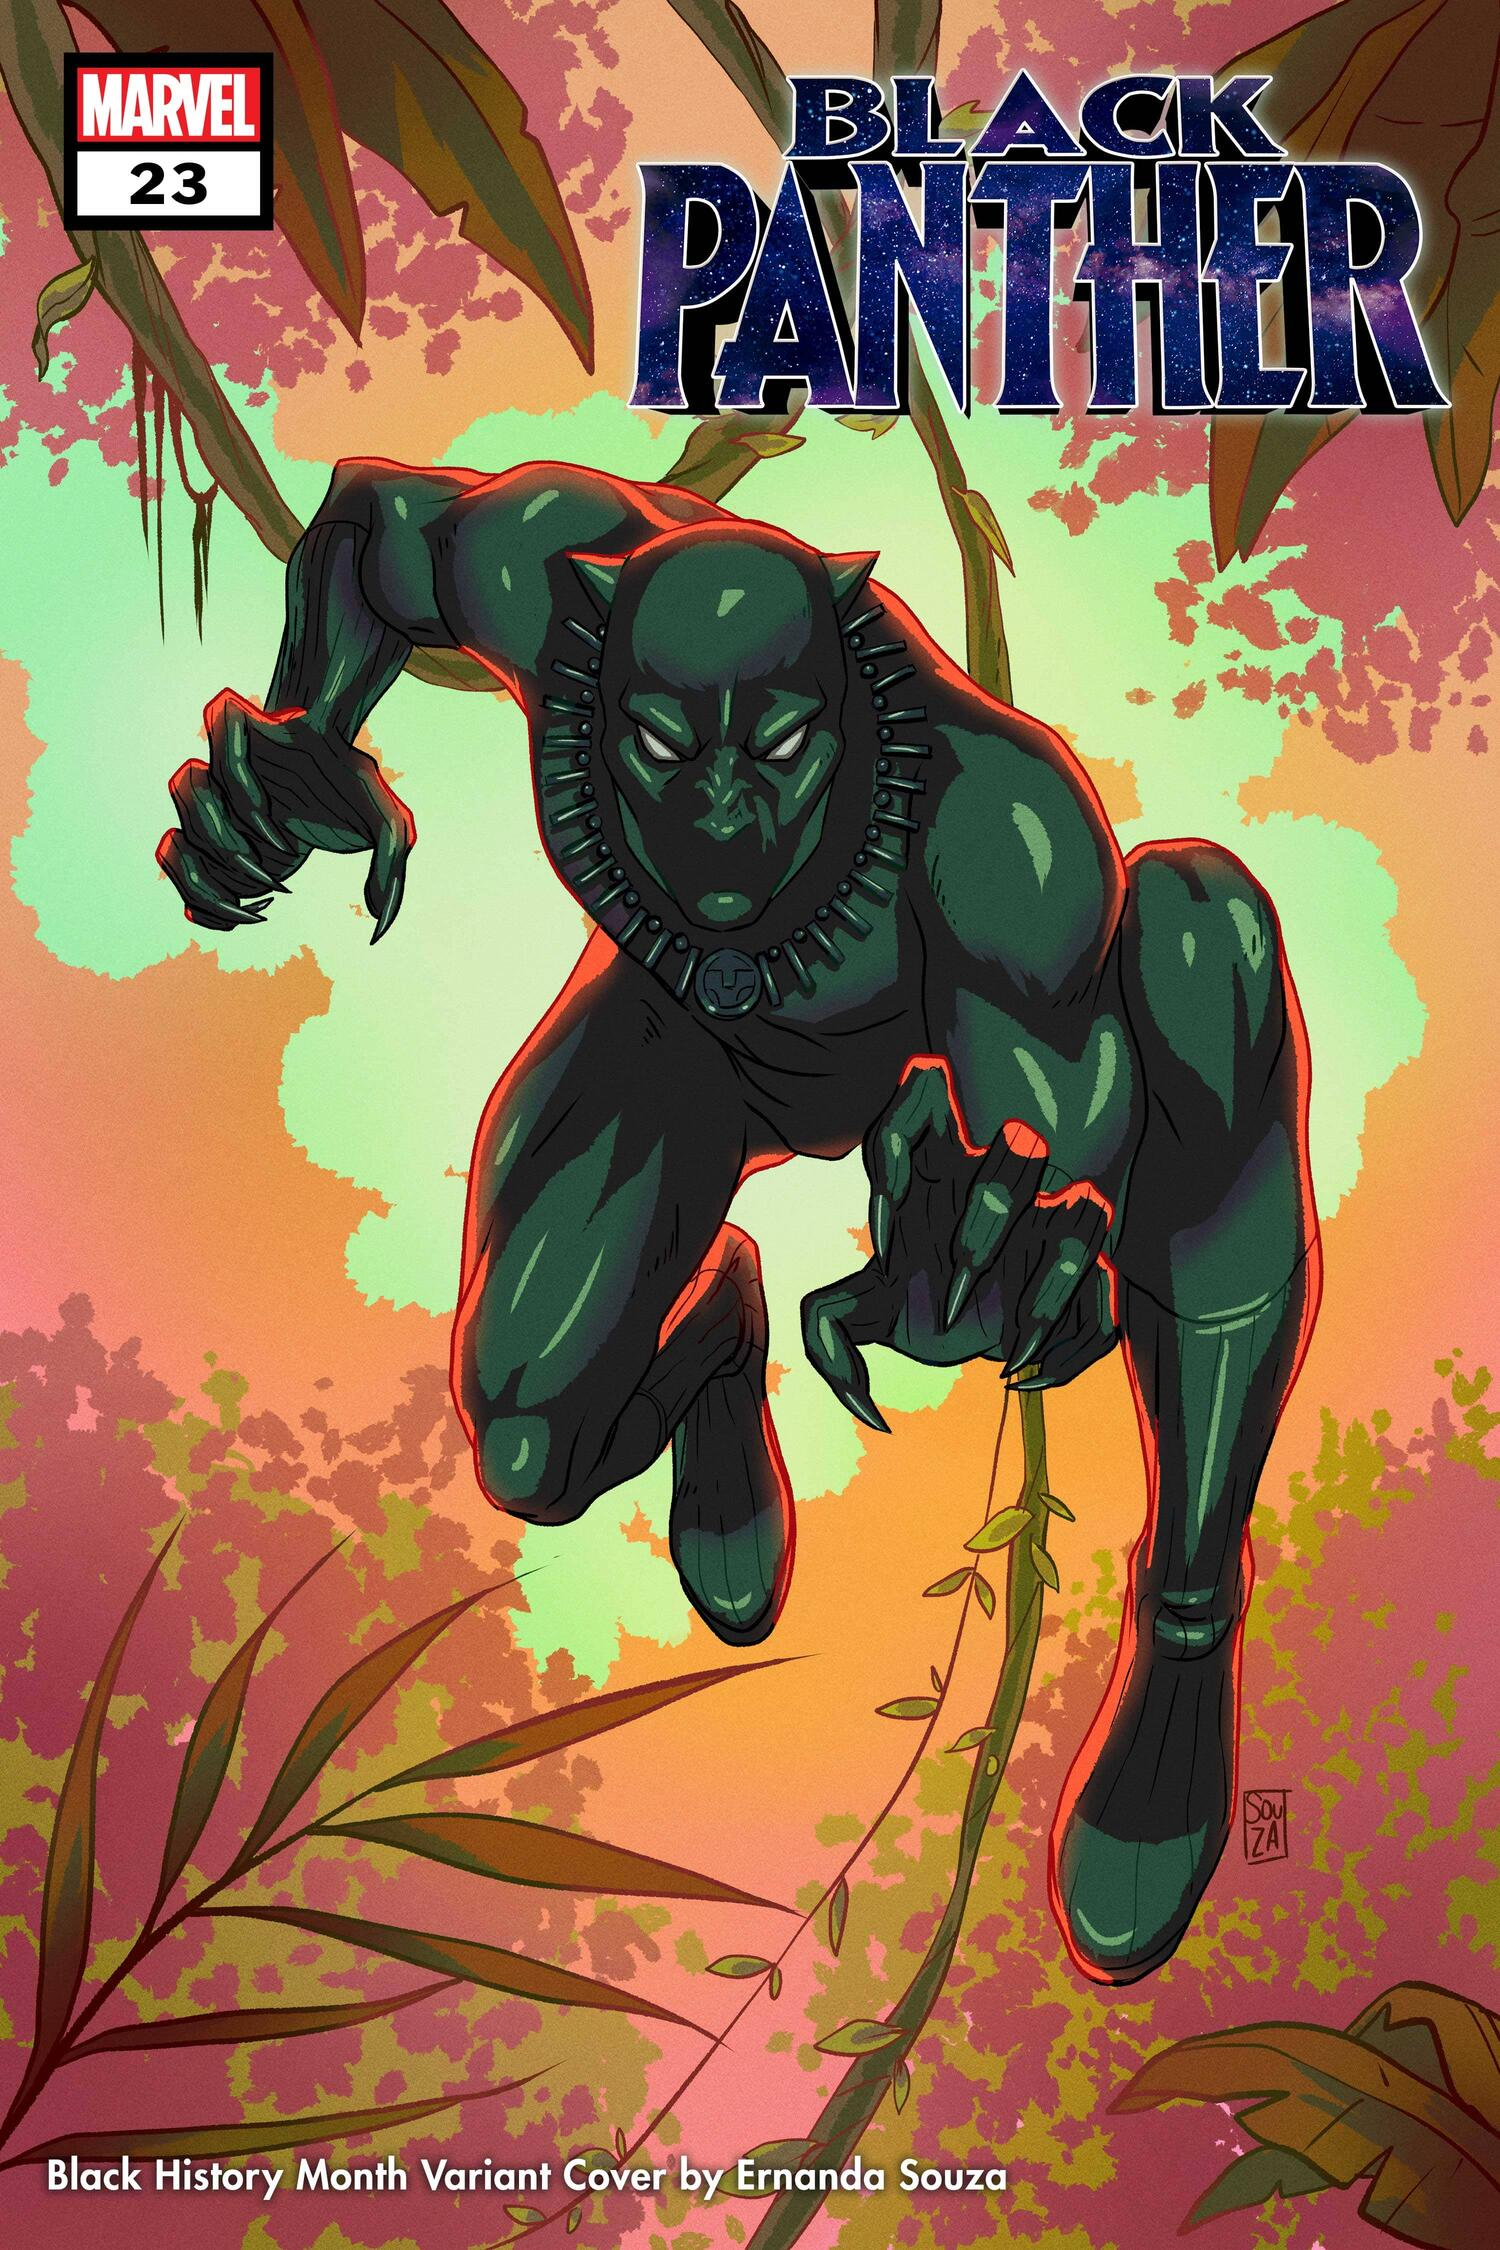 BLACK PANTHER #23 Black History Month Variant Cover by Ernanda Souza